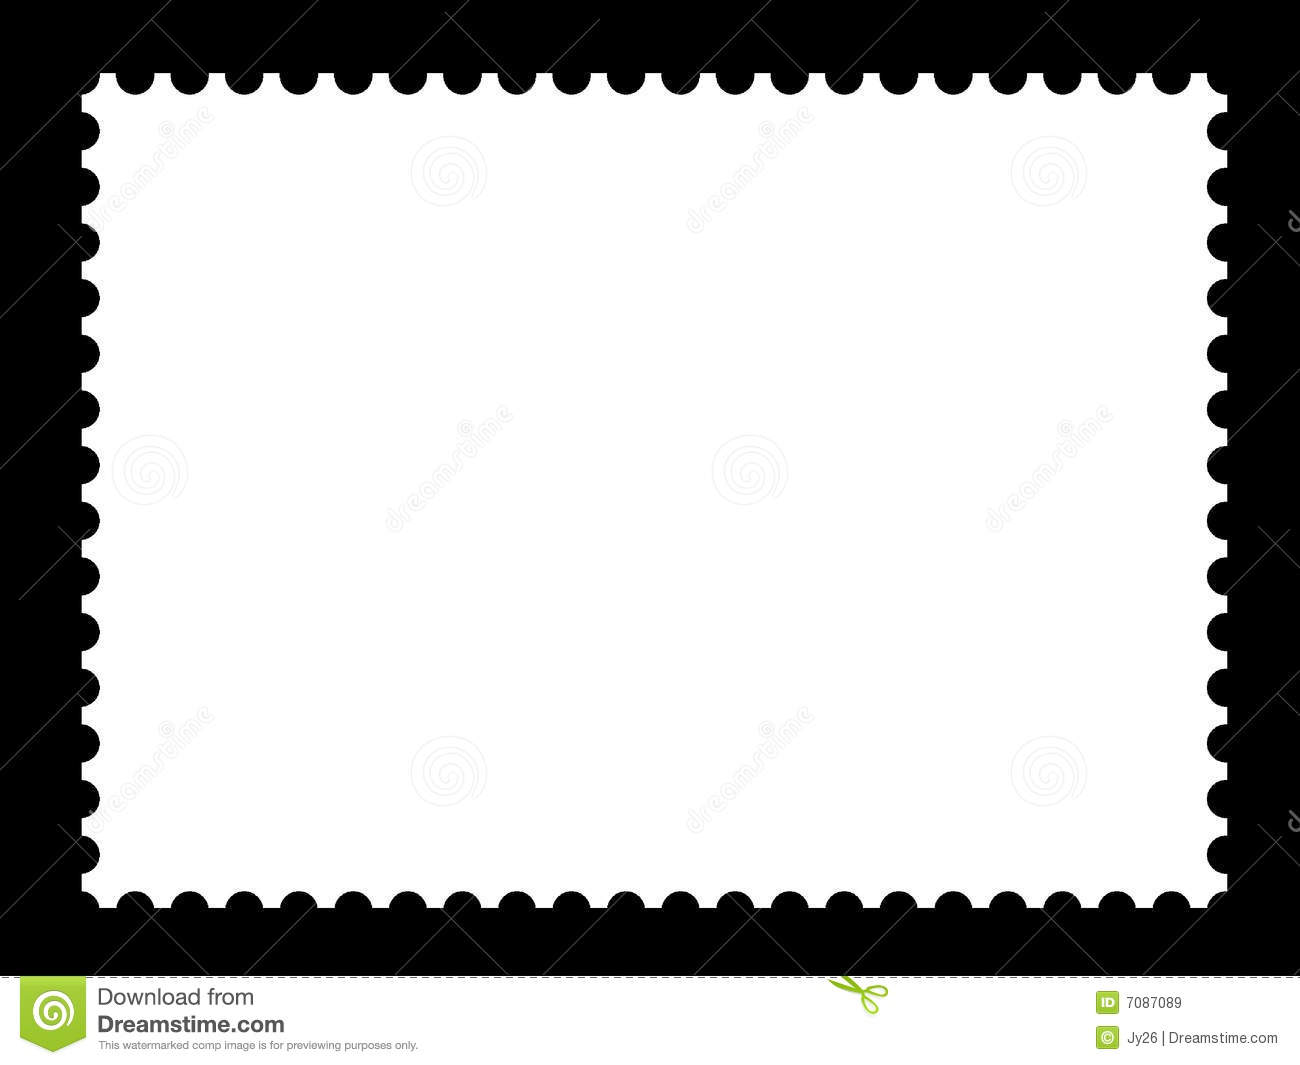 a blank stamp templates royalty free stock images